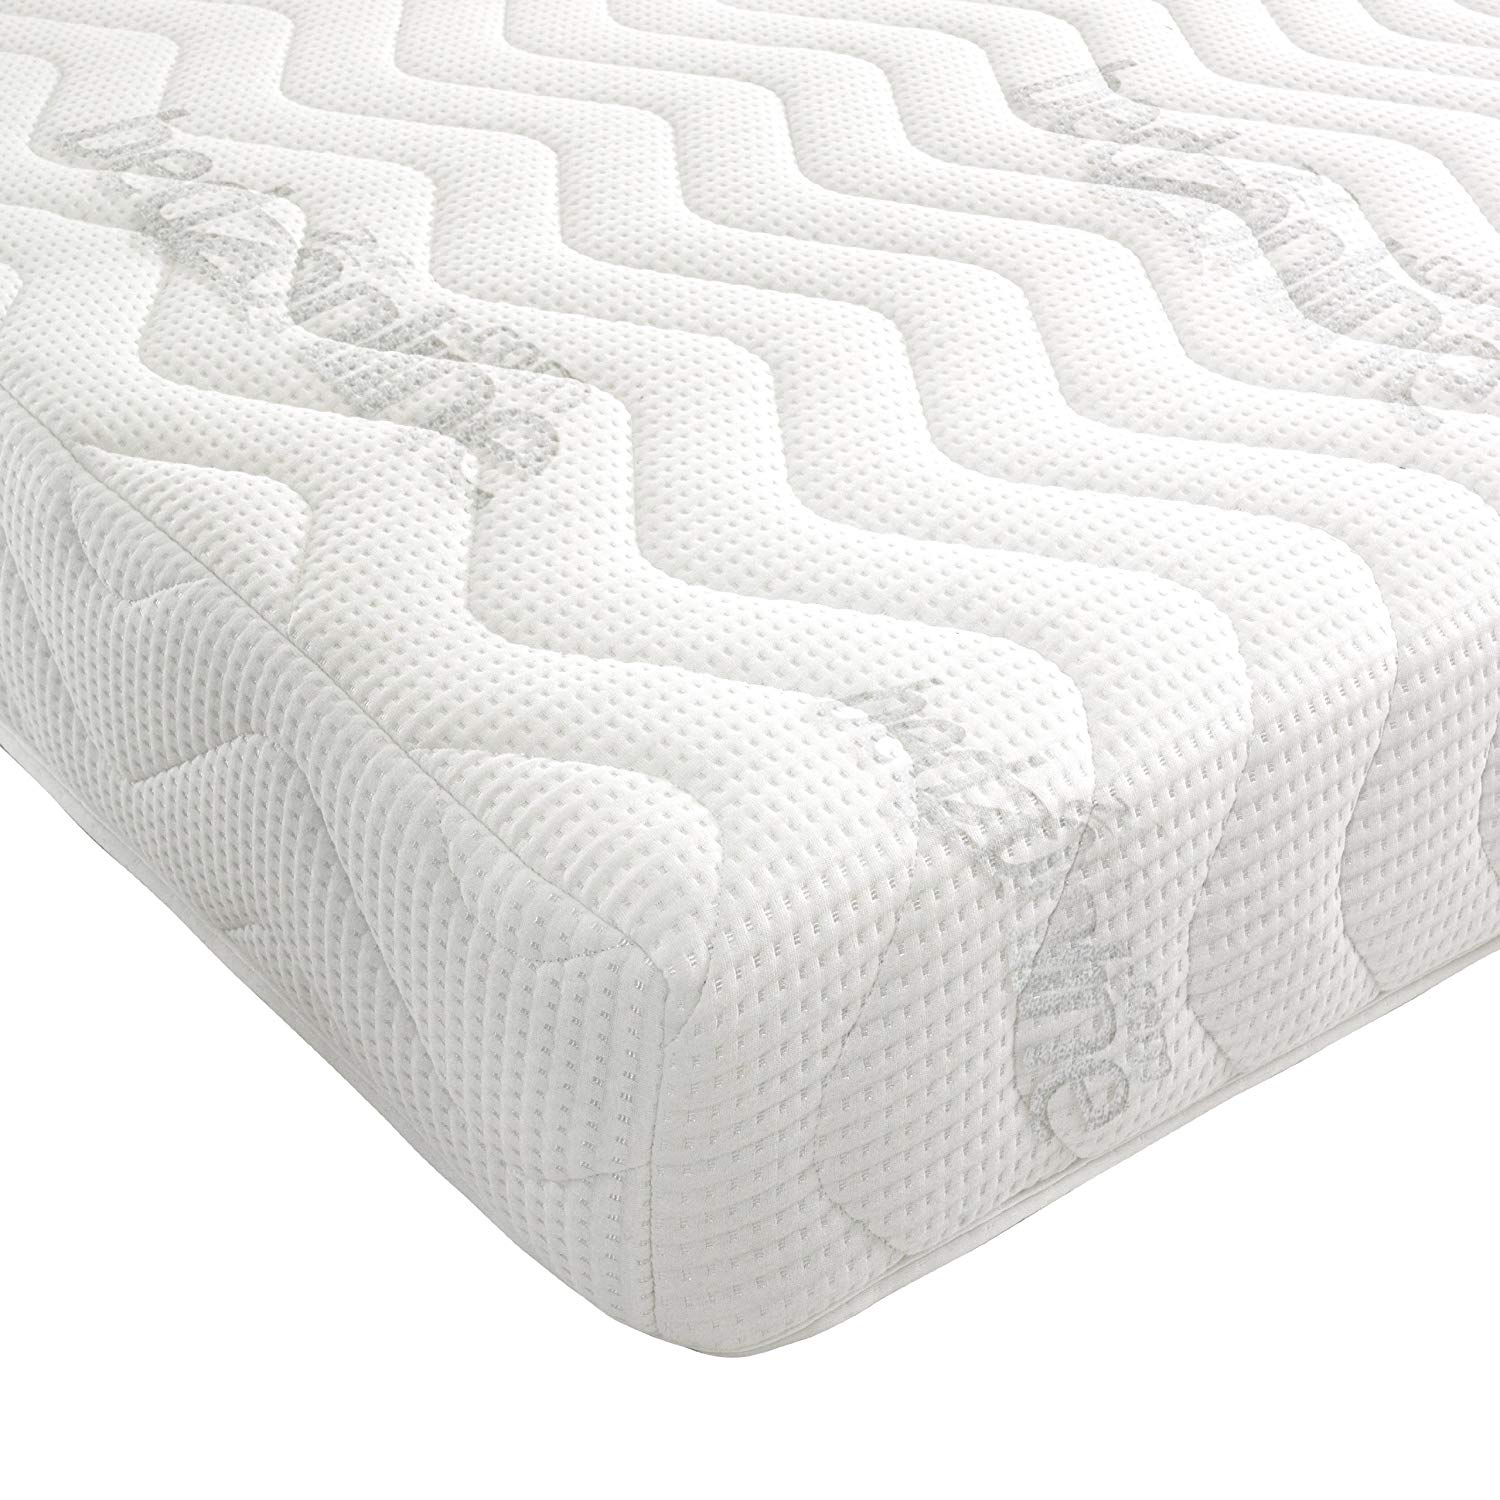 Bedzonline 7-Zone Memory Foam Rolled Mattress, Damask, White, Double [Energy Class A++]